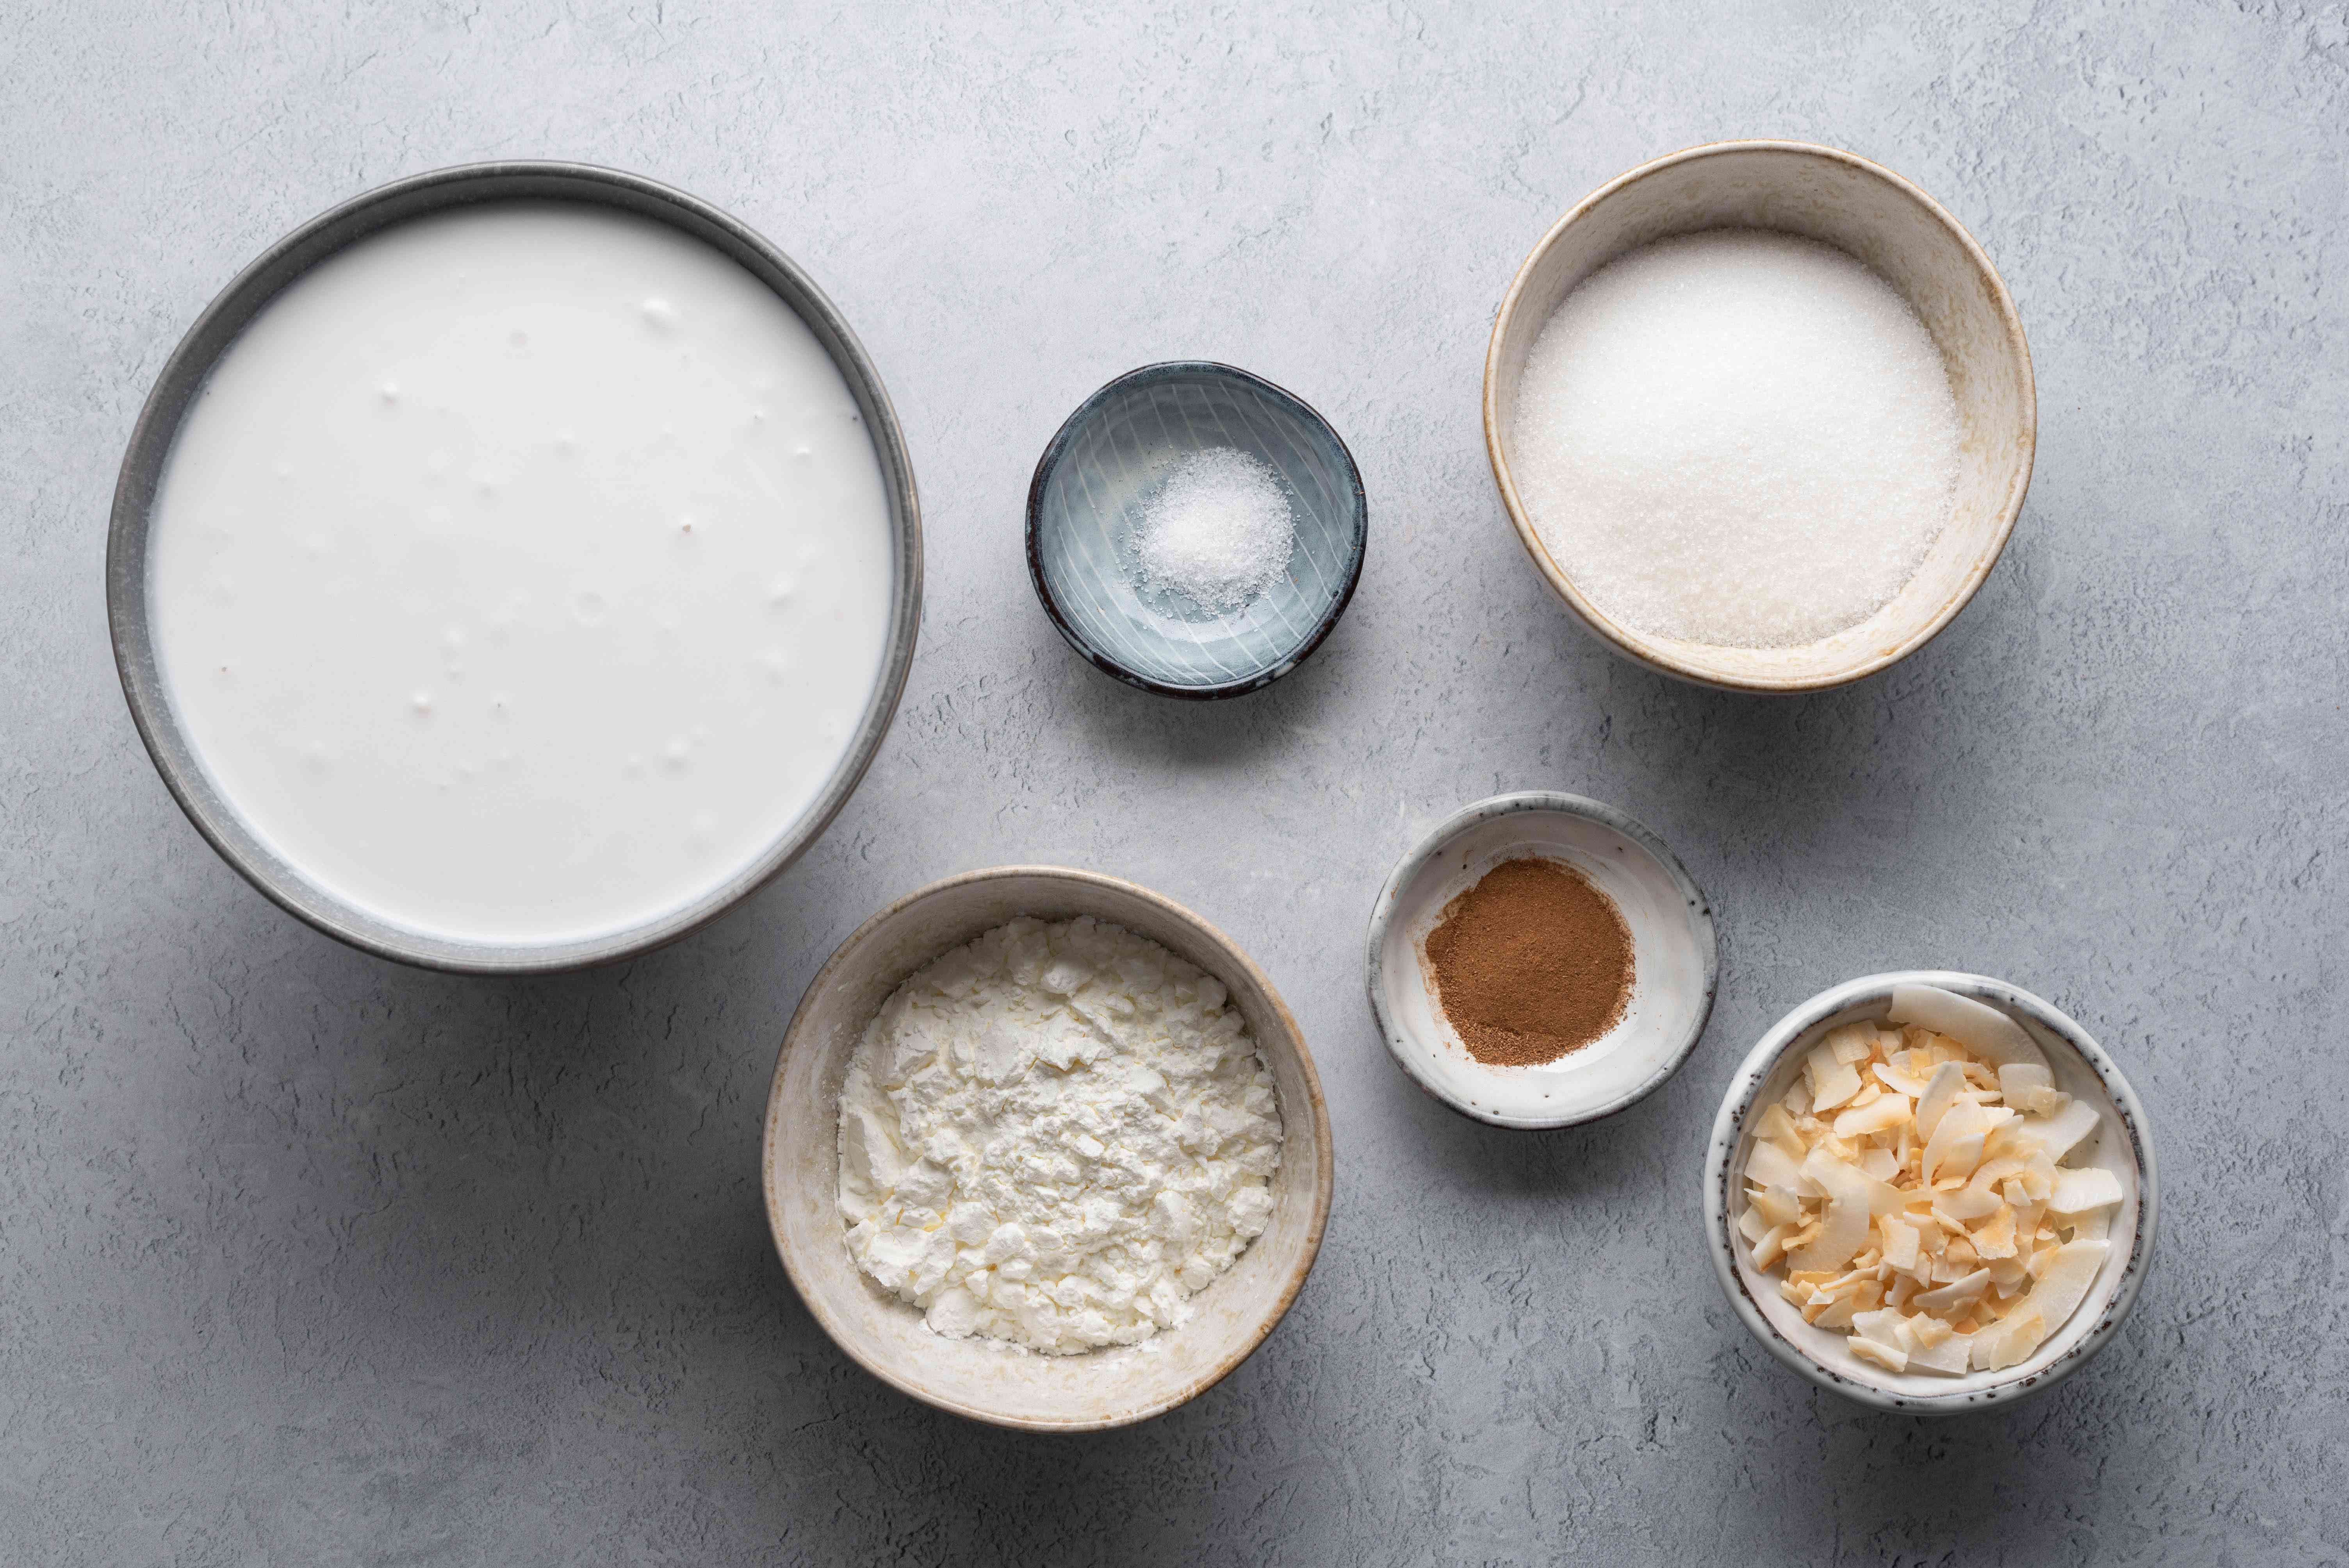 Ingredients to make coconut pudding